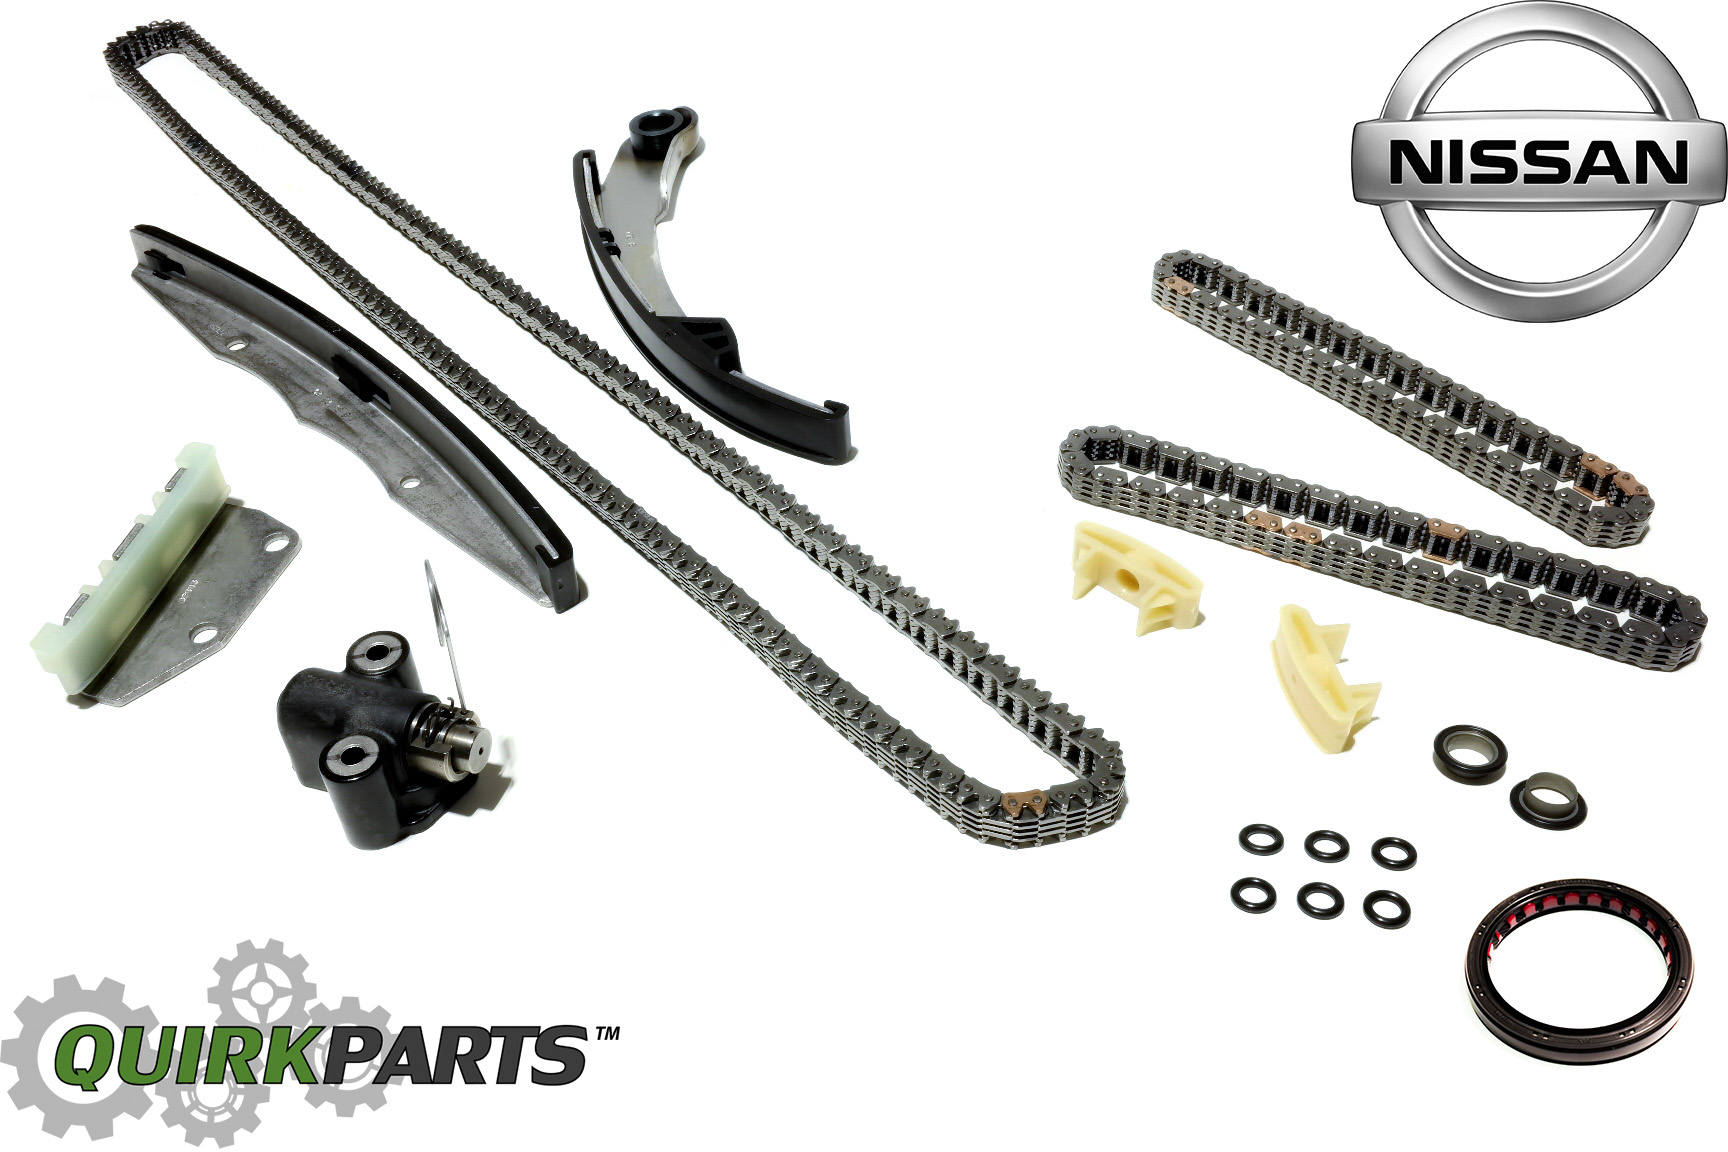 Nissan Frontier Pathfinder Xterra Upper Amp Lower Camshaft Timing Chain Kit Oem